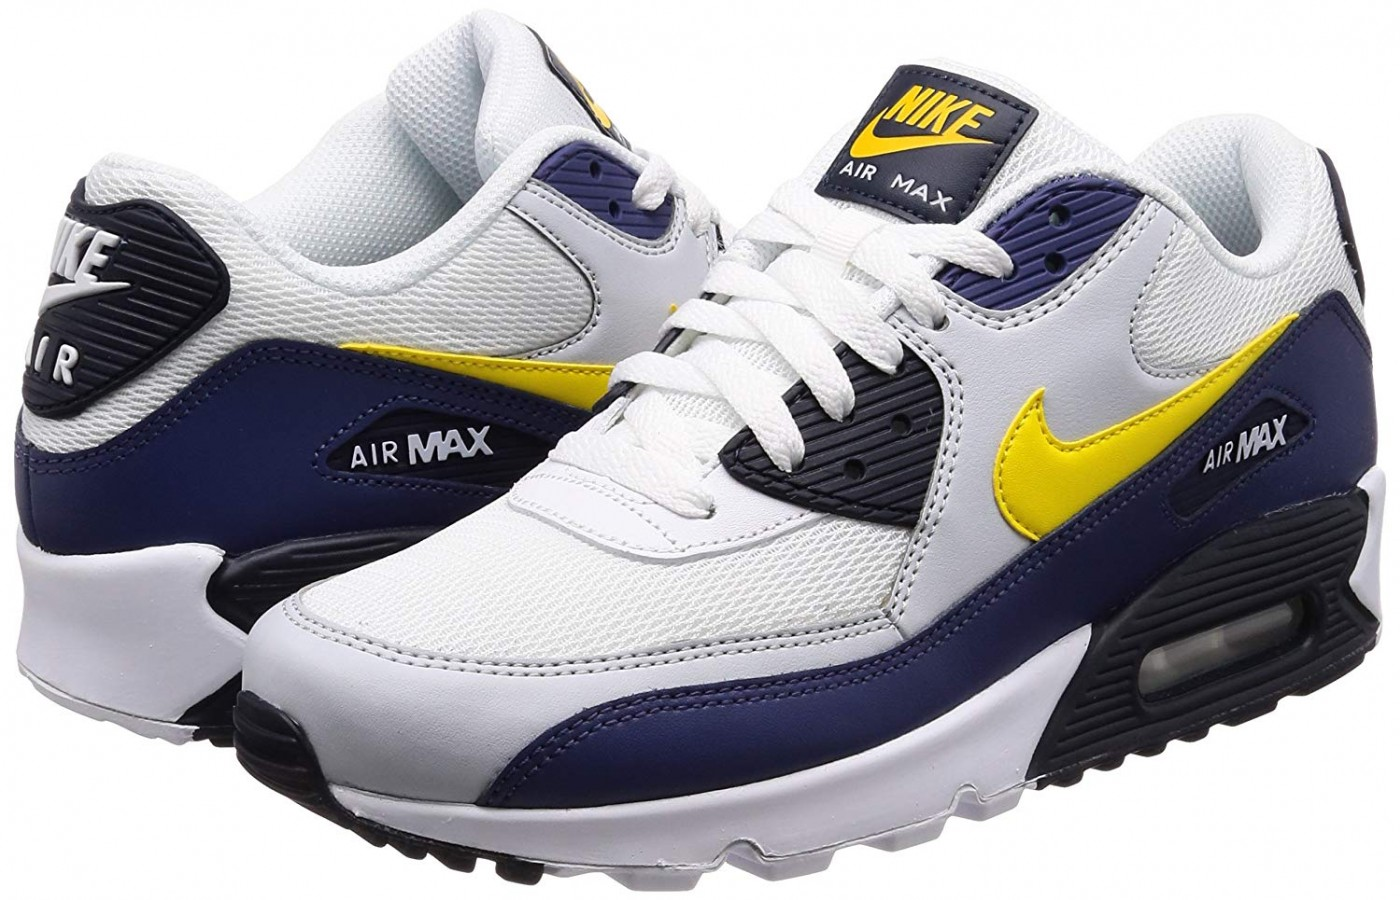 Golpeteo arcilla Separar  Nike Air Max 90 Reviewed for Performance in 2020 | WalkJogRun